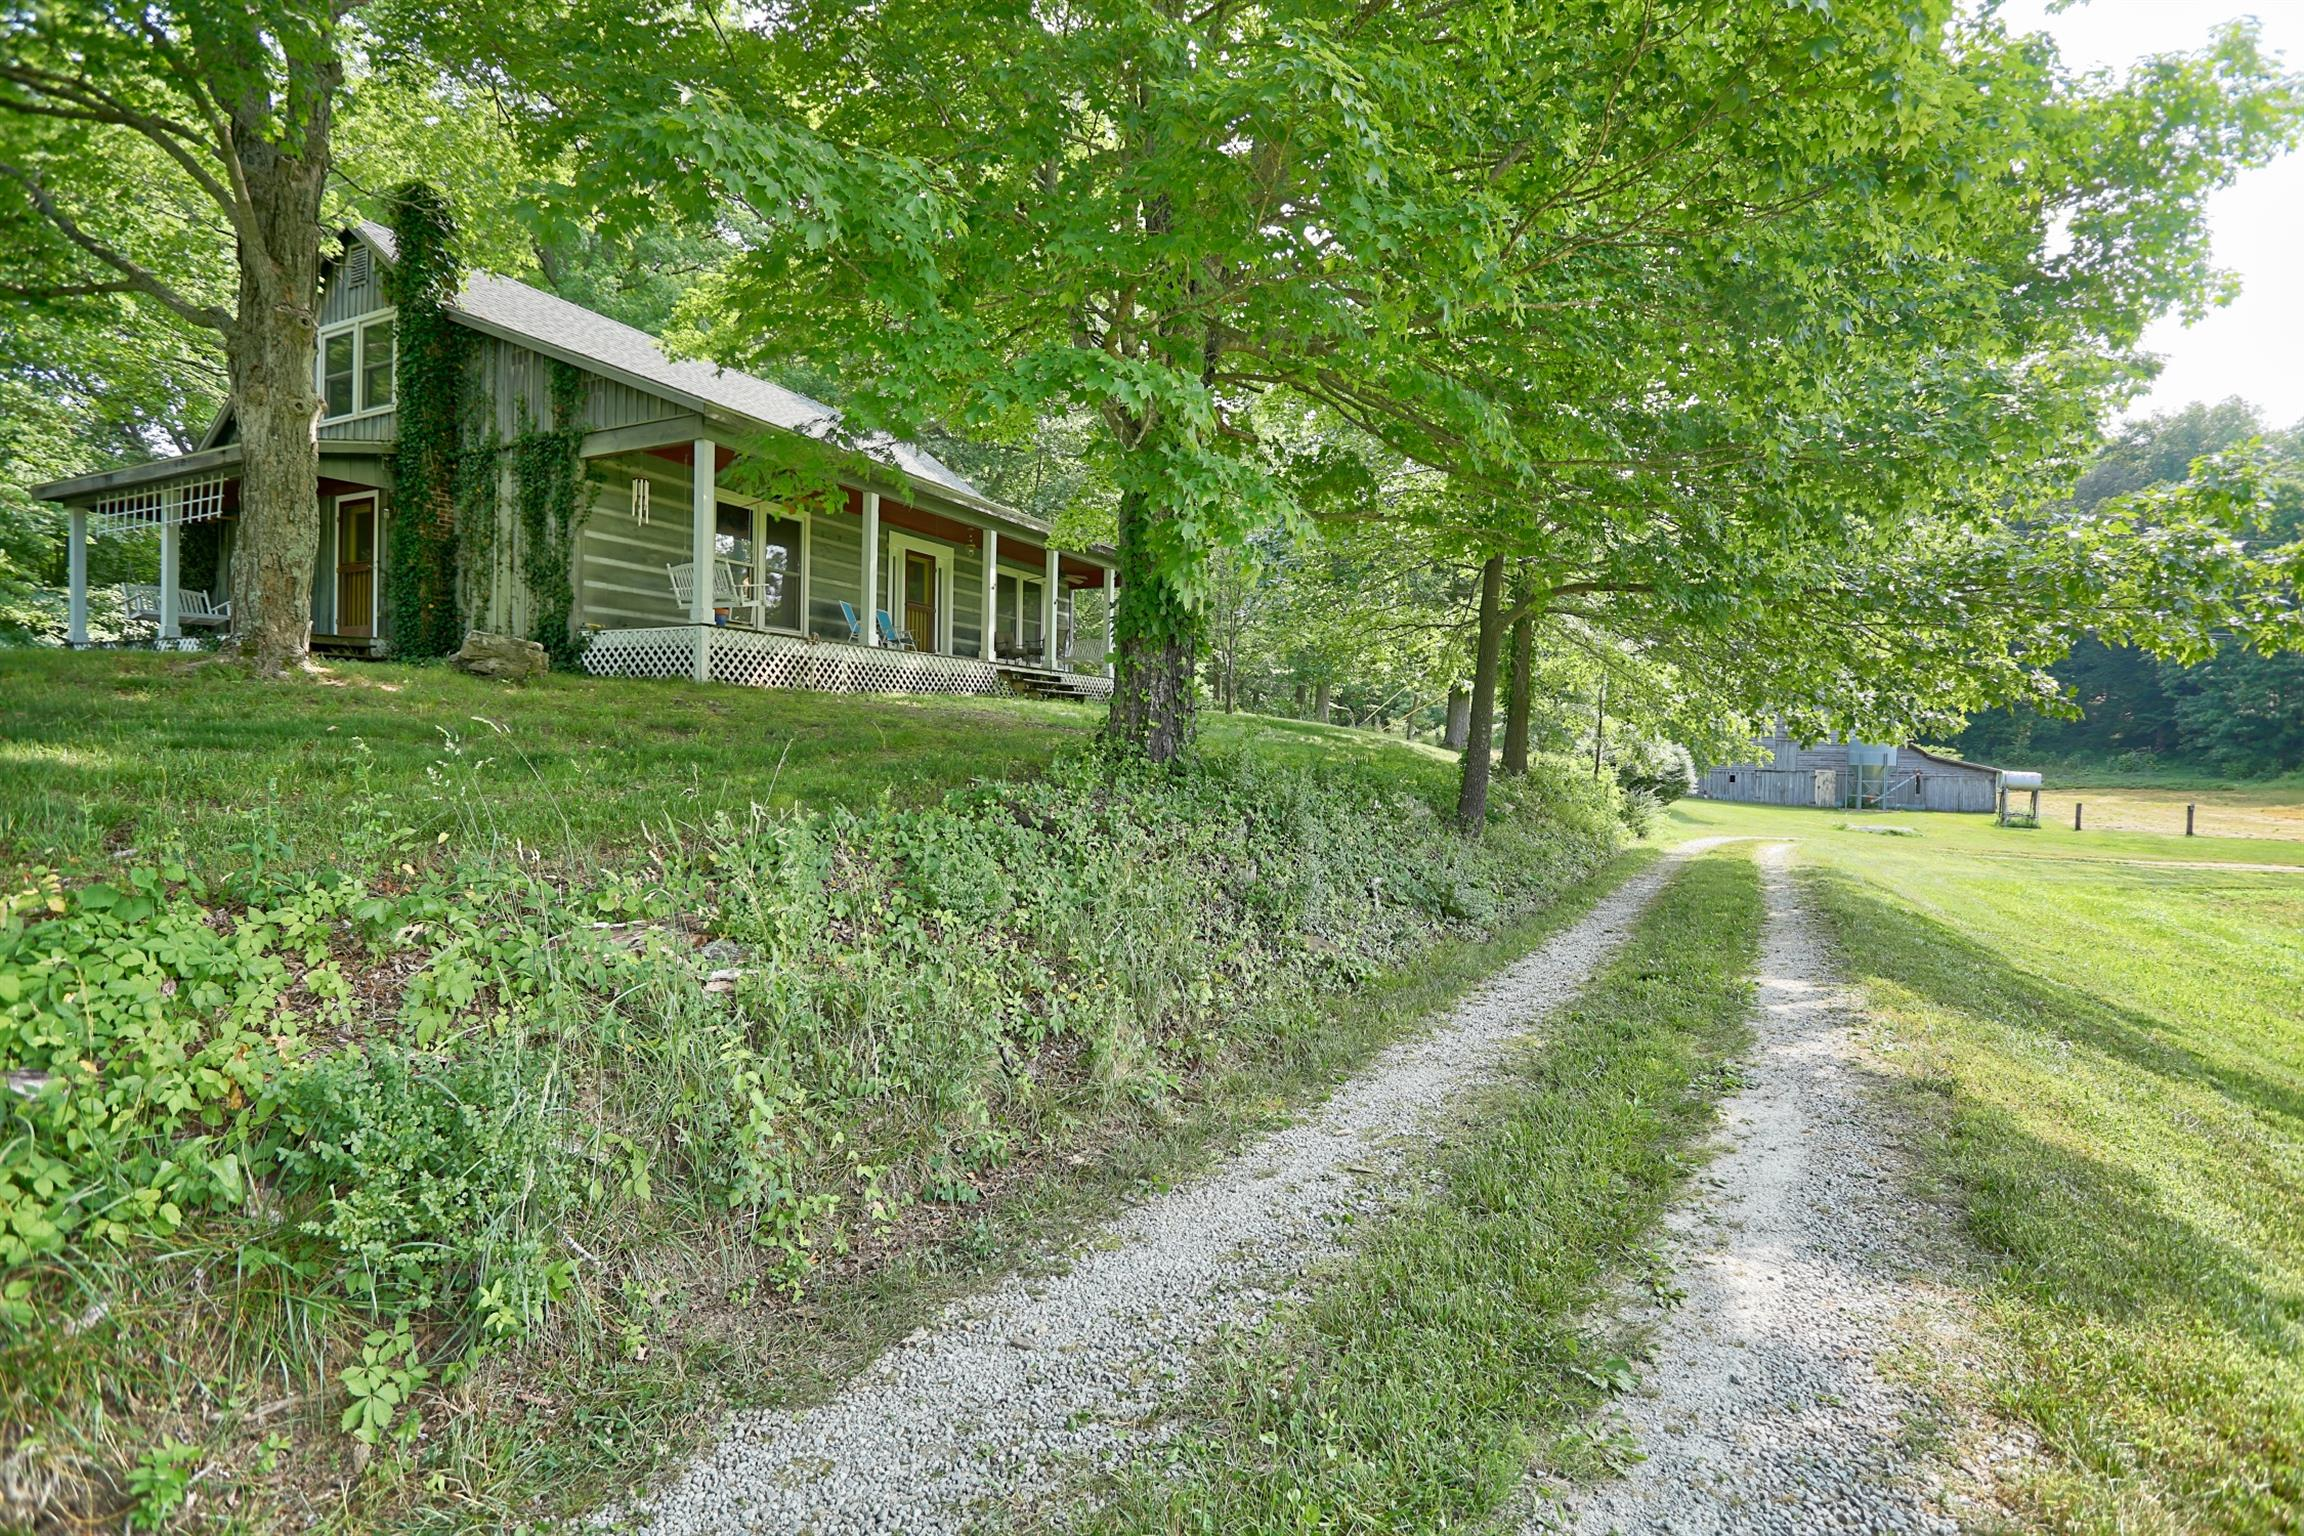 600 Lee Keen Rd, Scottsville, KY 42164 - Scottsville, KY real estate listing